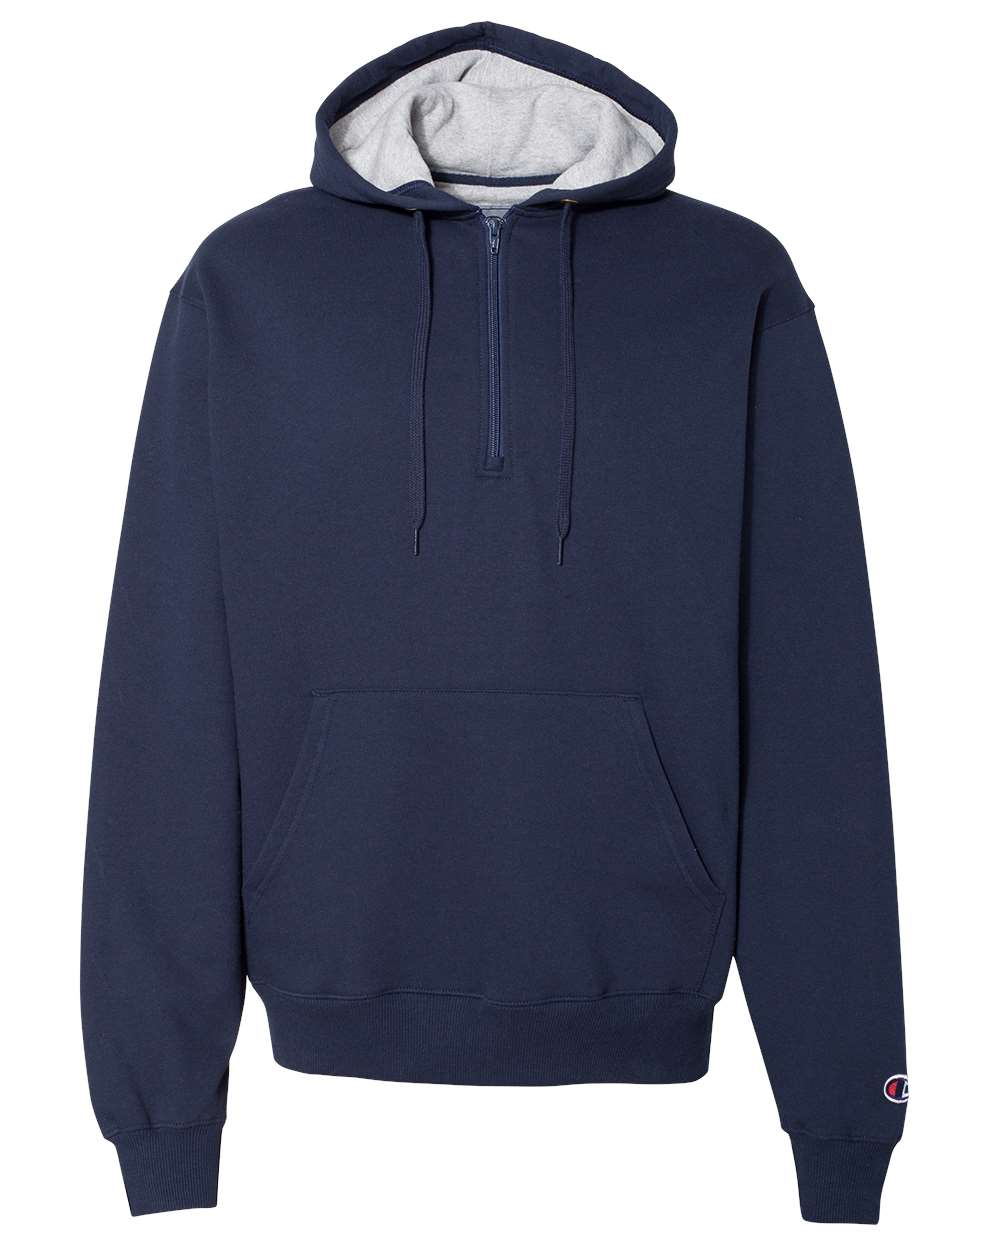 Champion-Mens-Cotton-Max-Hooded-Quarter-Zip-Sweatshirt-Pullover-S185-up-to-3XL miniature 15